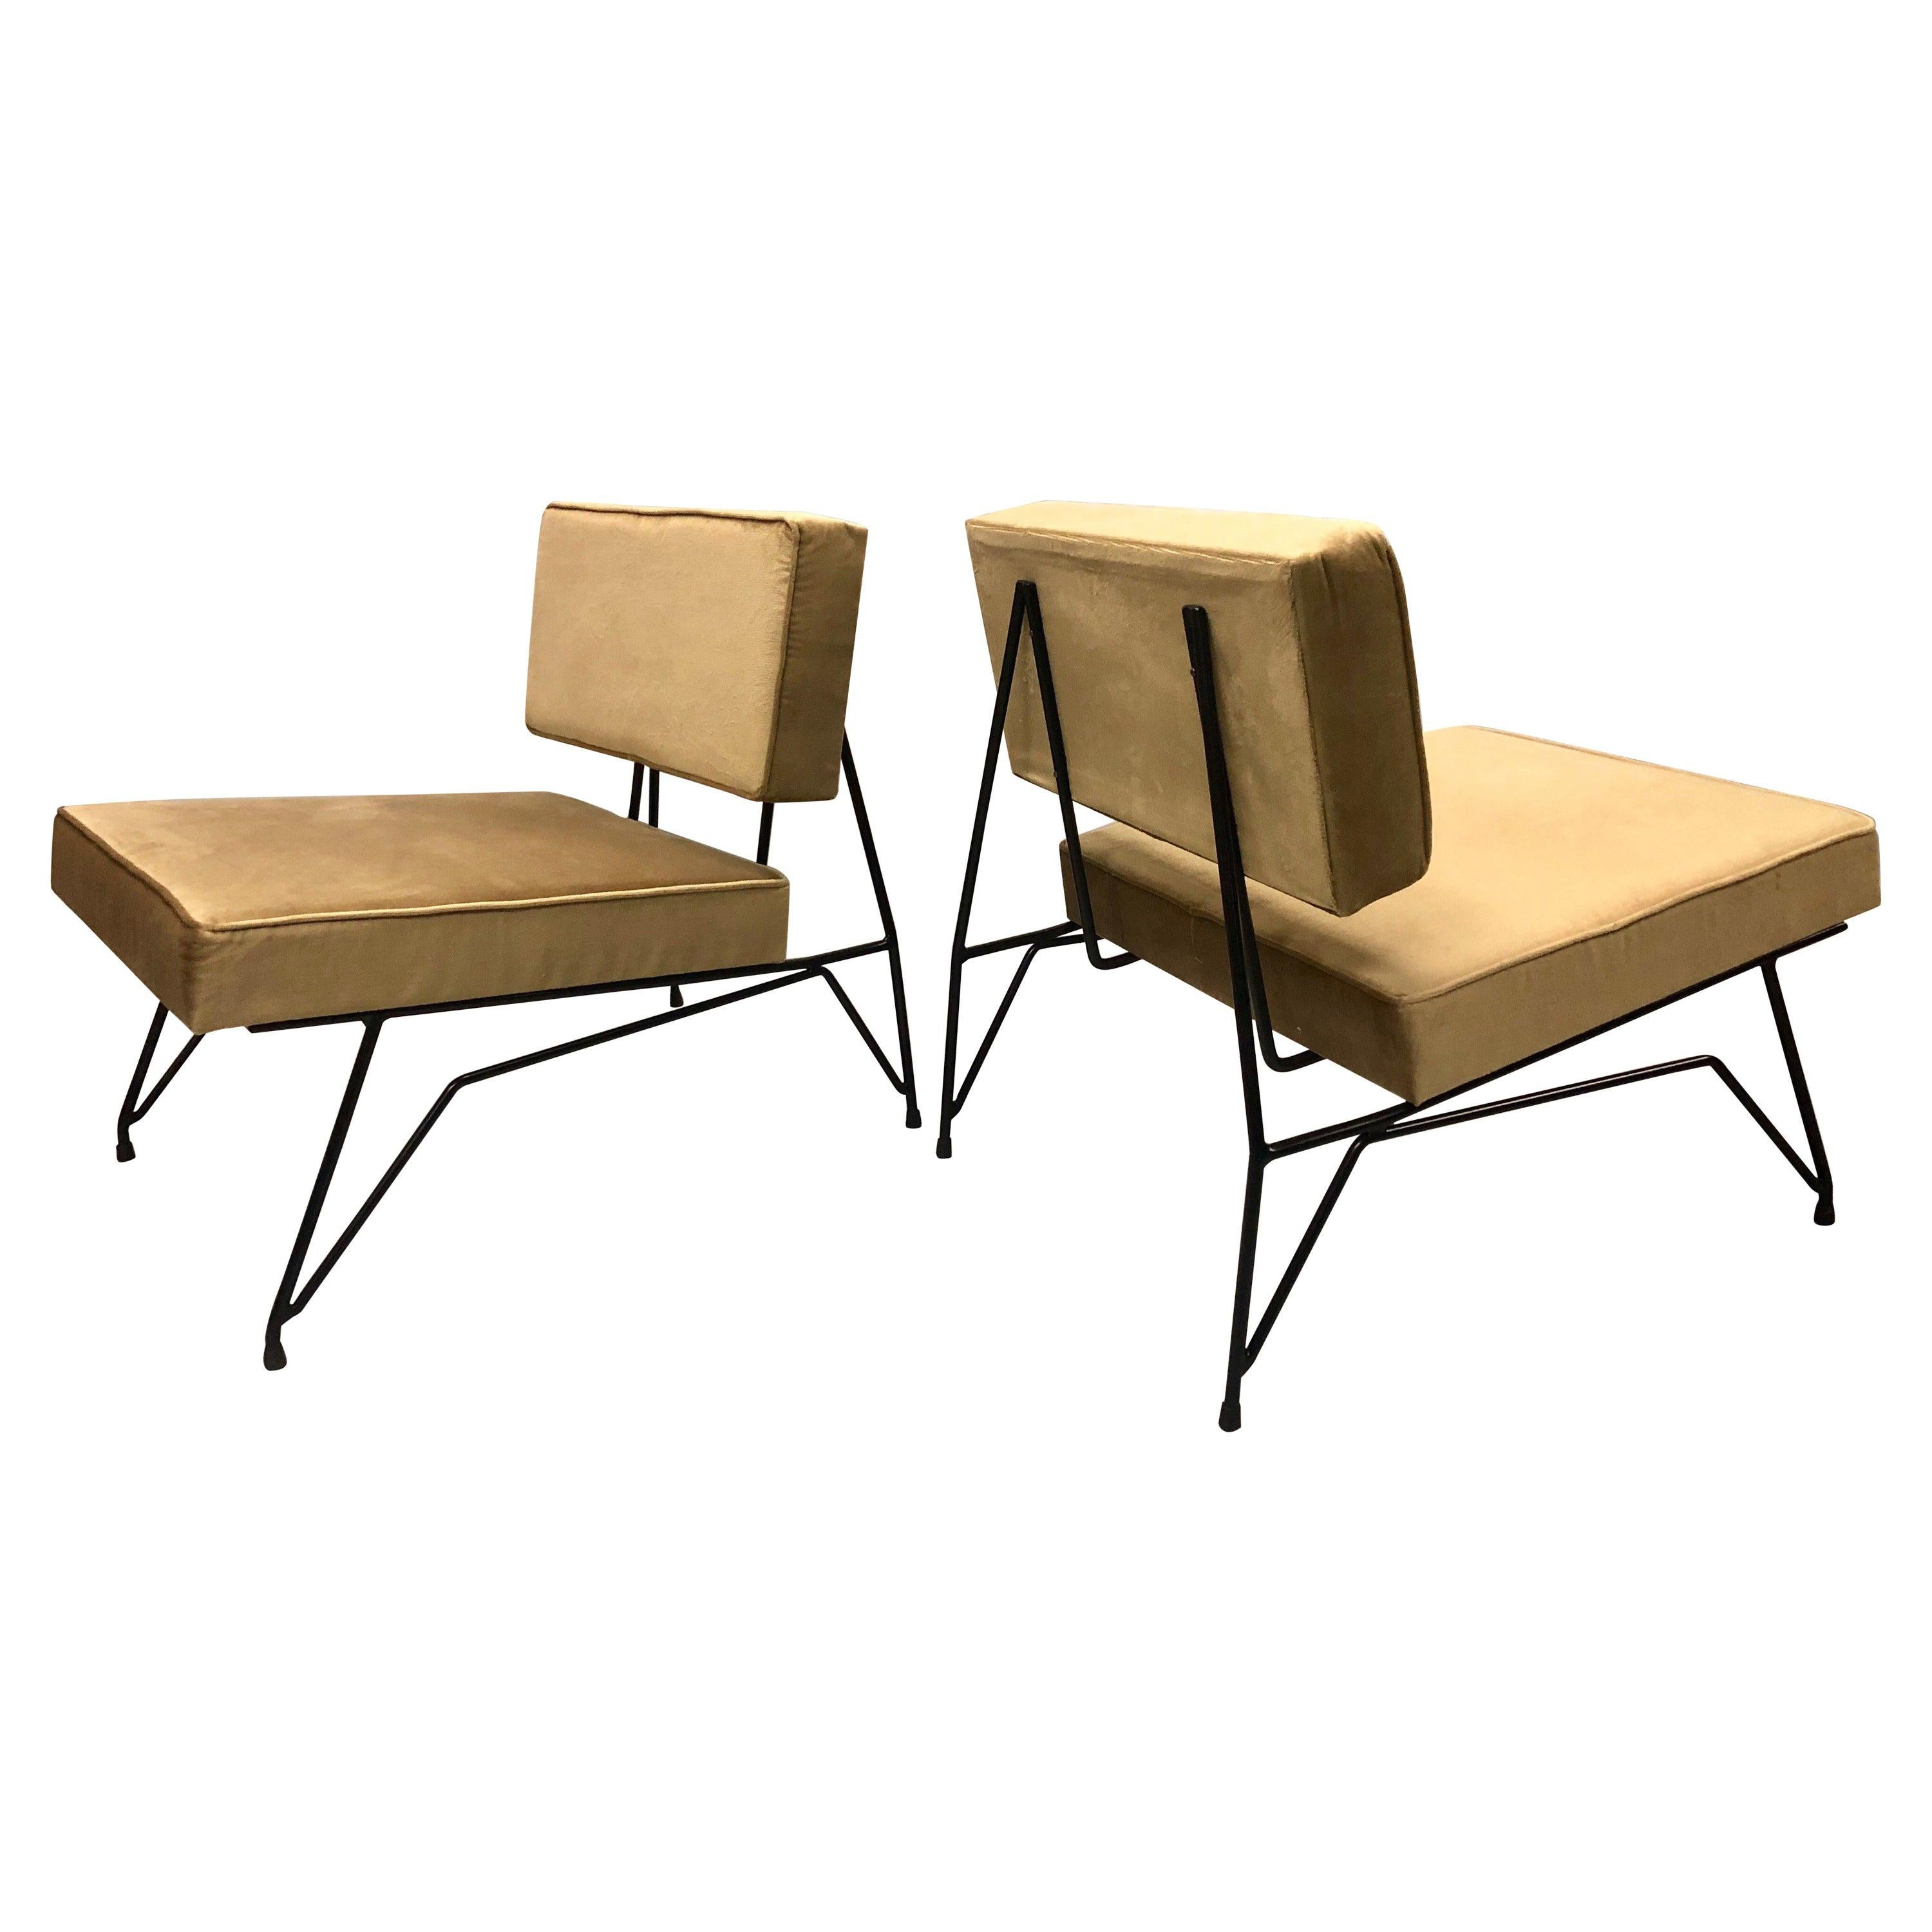 Pair of Mid-Century Modern, Cantilevered Lounge Chairs, Augusto Bozzi Attributed